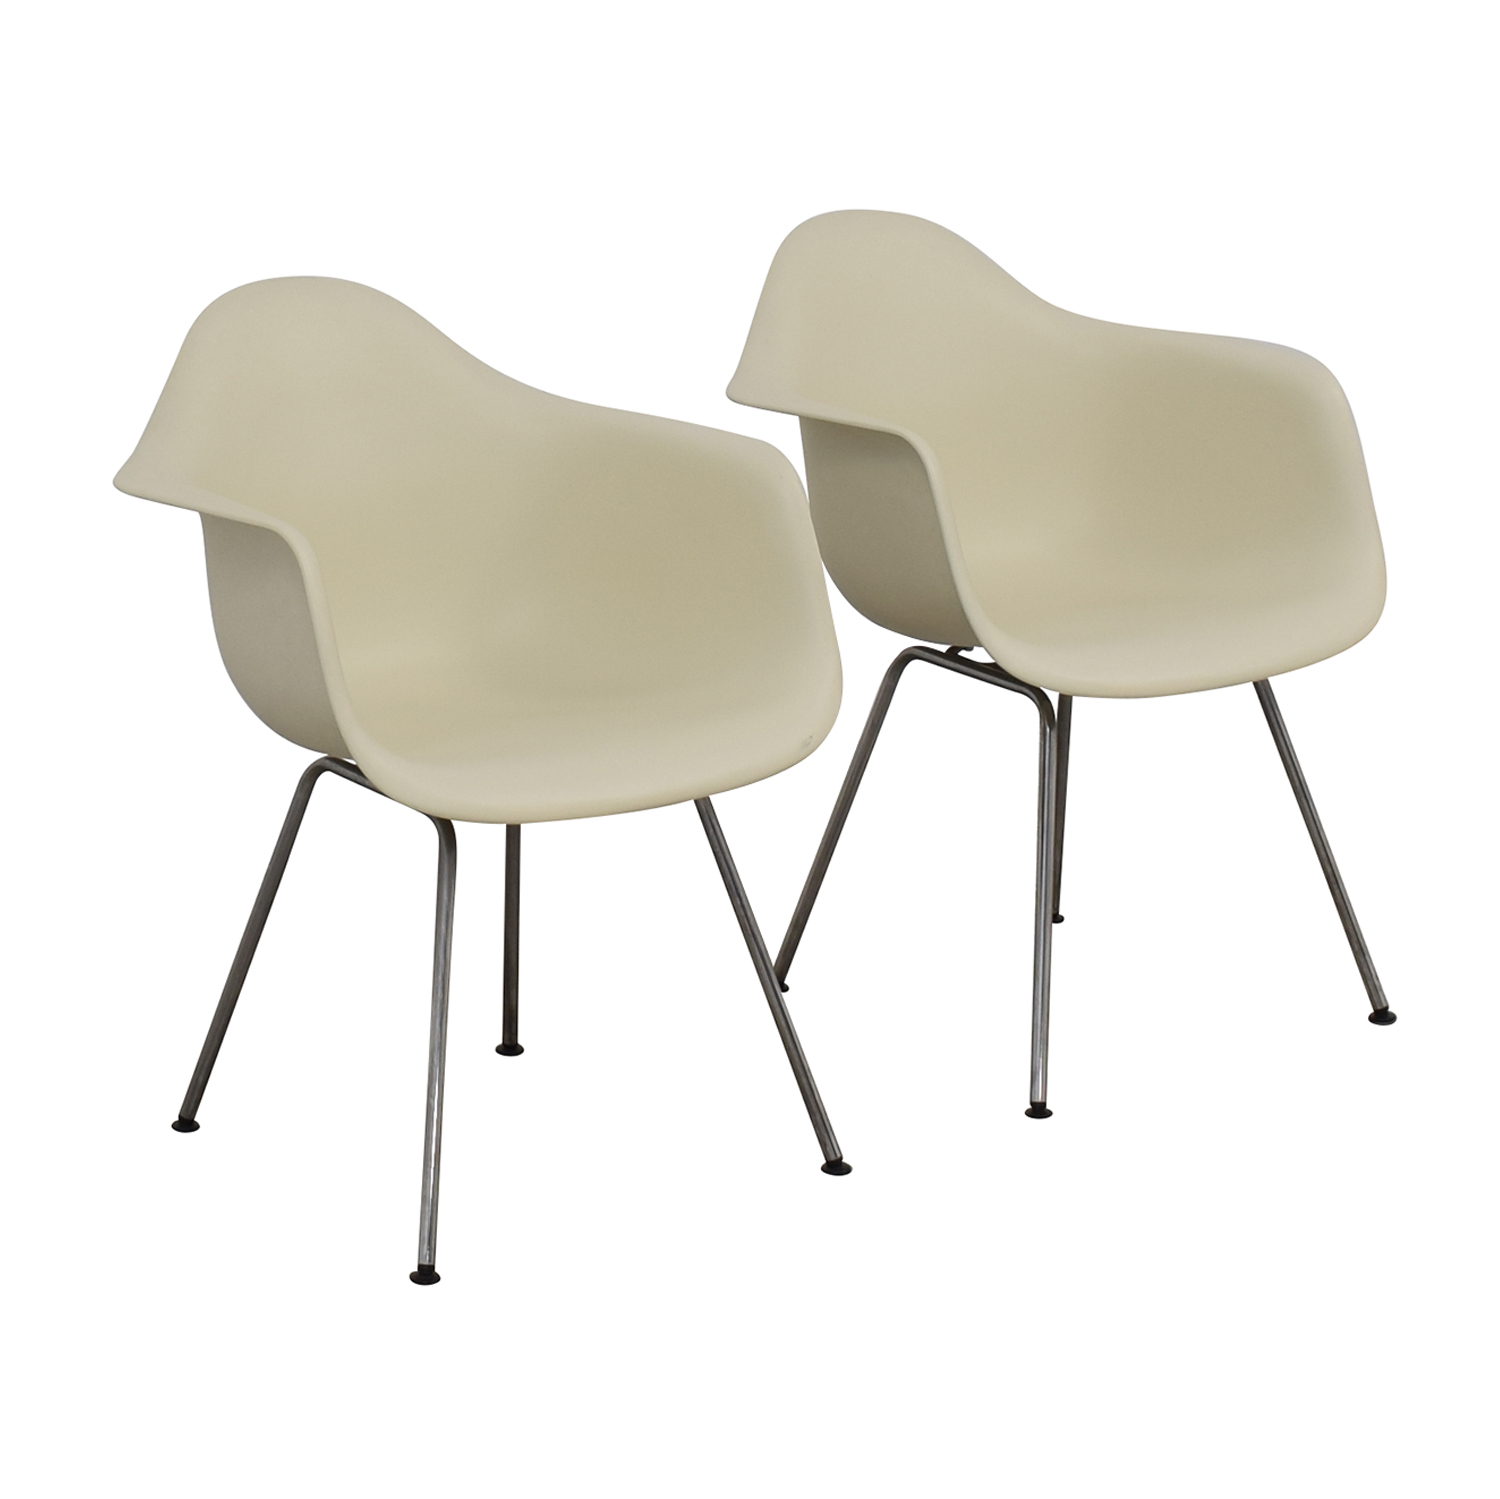 Design Within Reach Design Within Reach Eames Molded Plastic 4 Leg Armchairs for sale